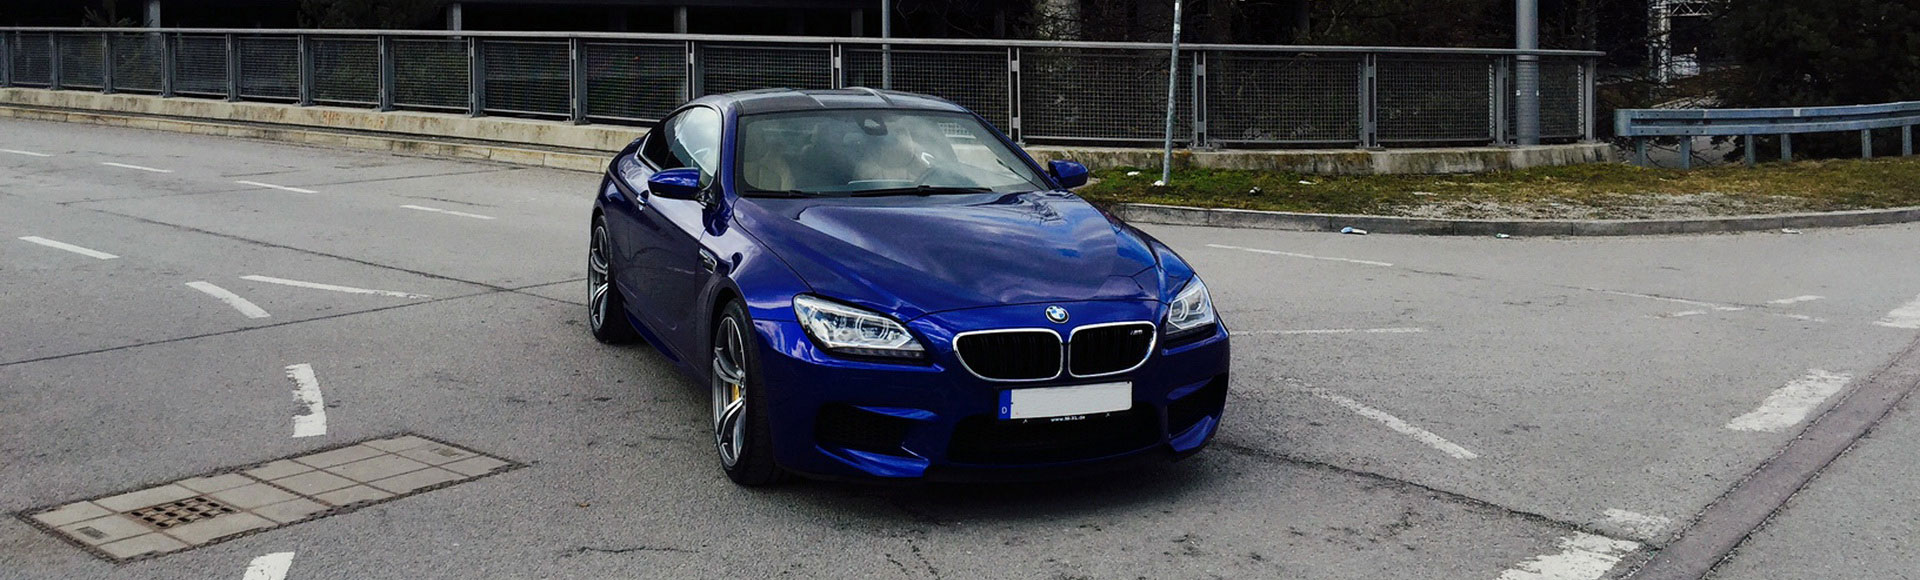 BMW M6 Coupe 2013 5